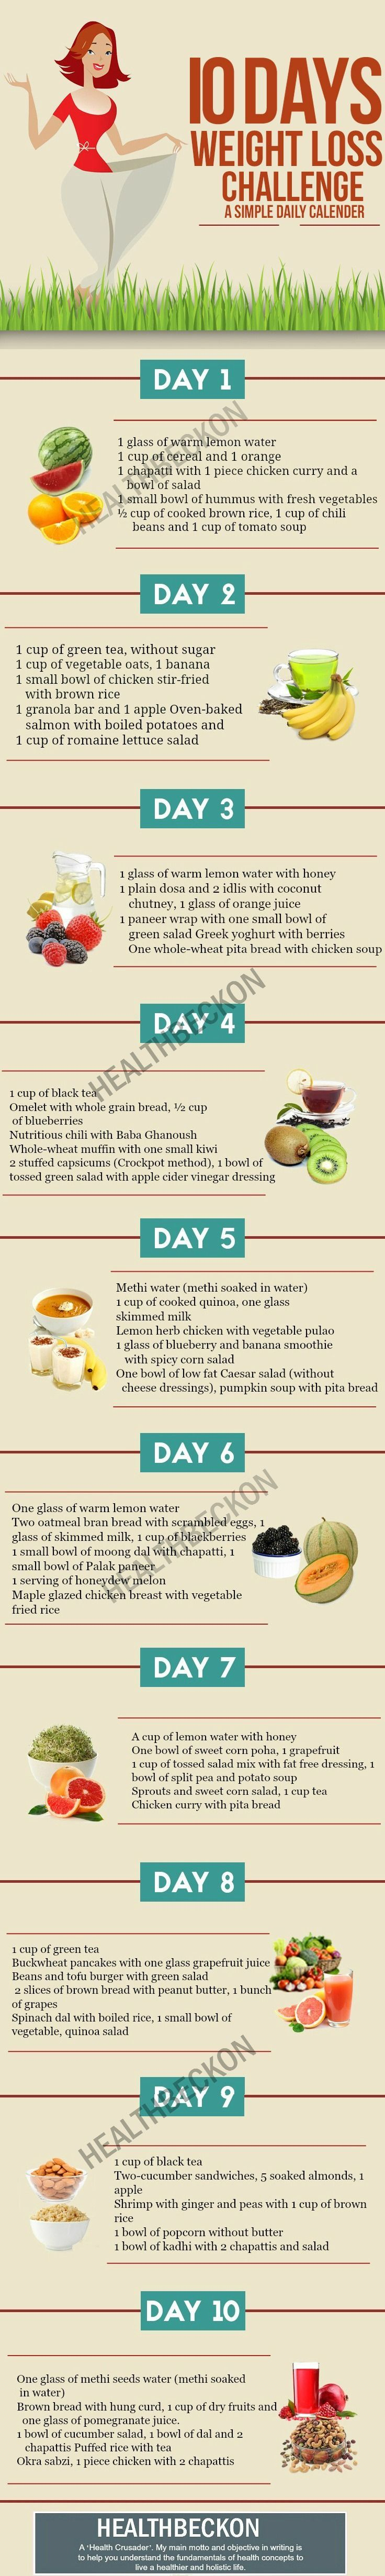 If you too are looking for ways to lose weight and live a healthier life, you have come to the right place! The following tips can help you shed a few pounds, and that too in just 10 days!